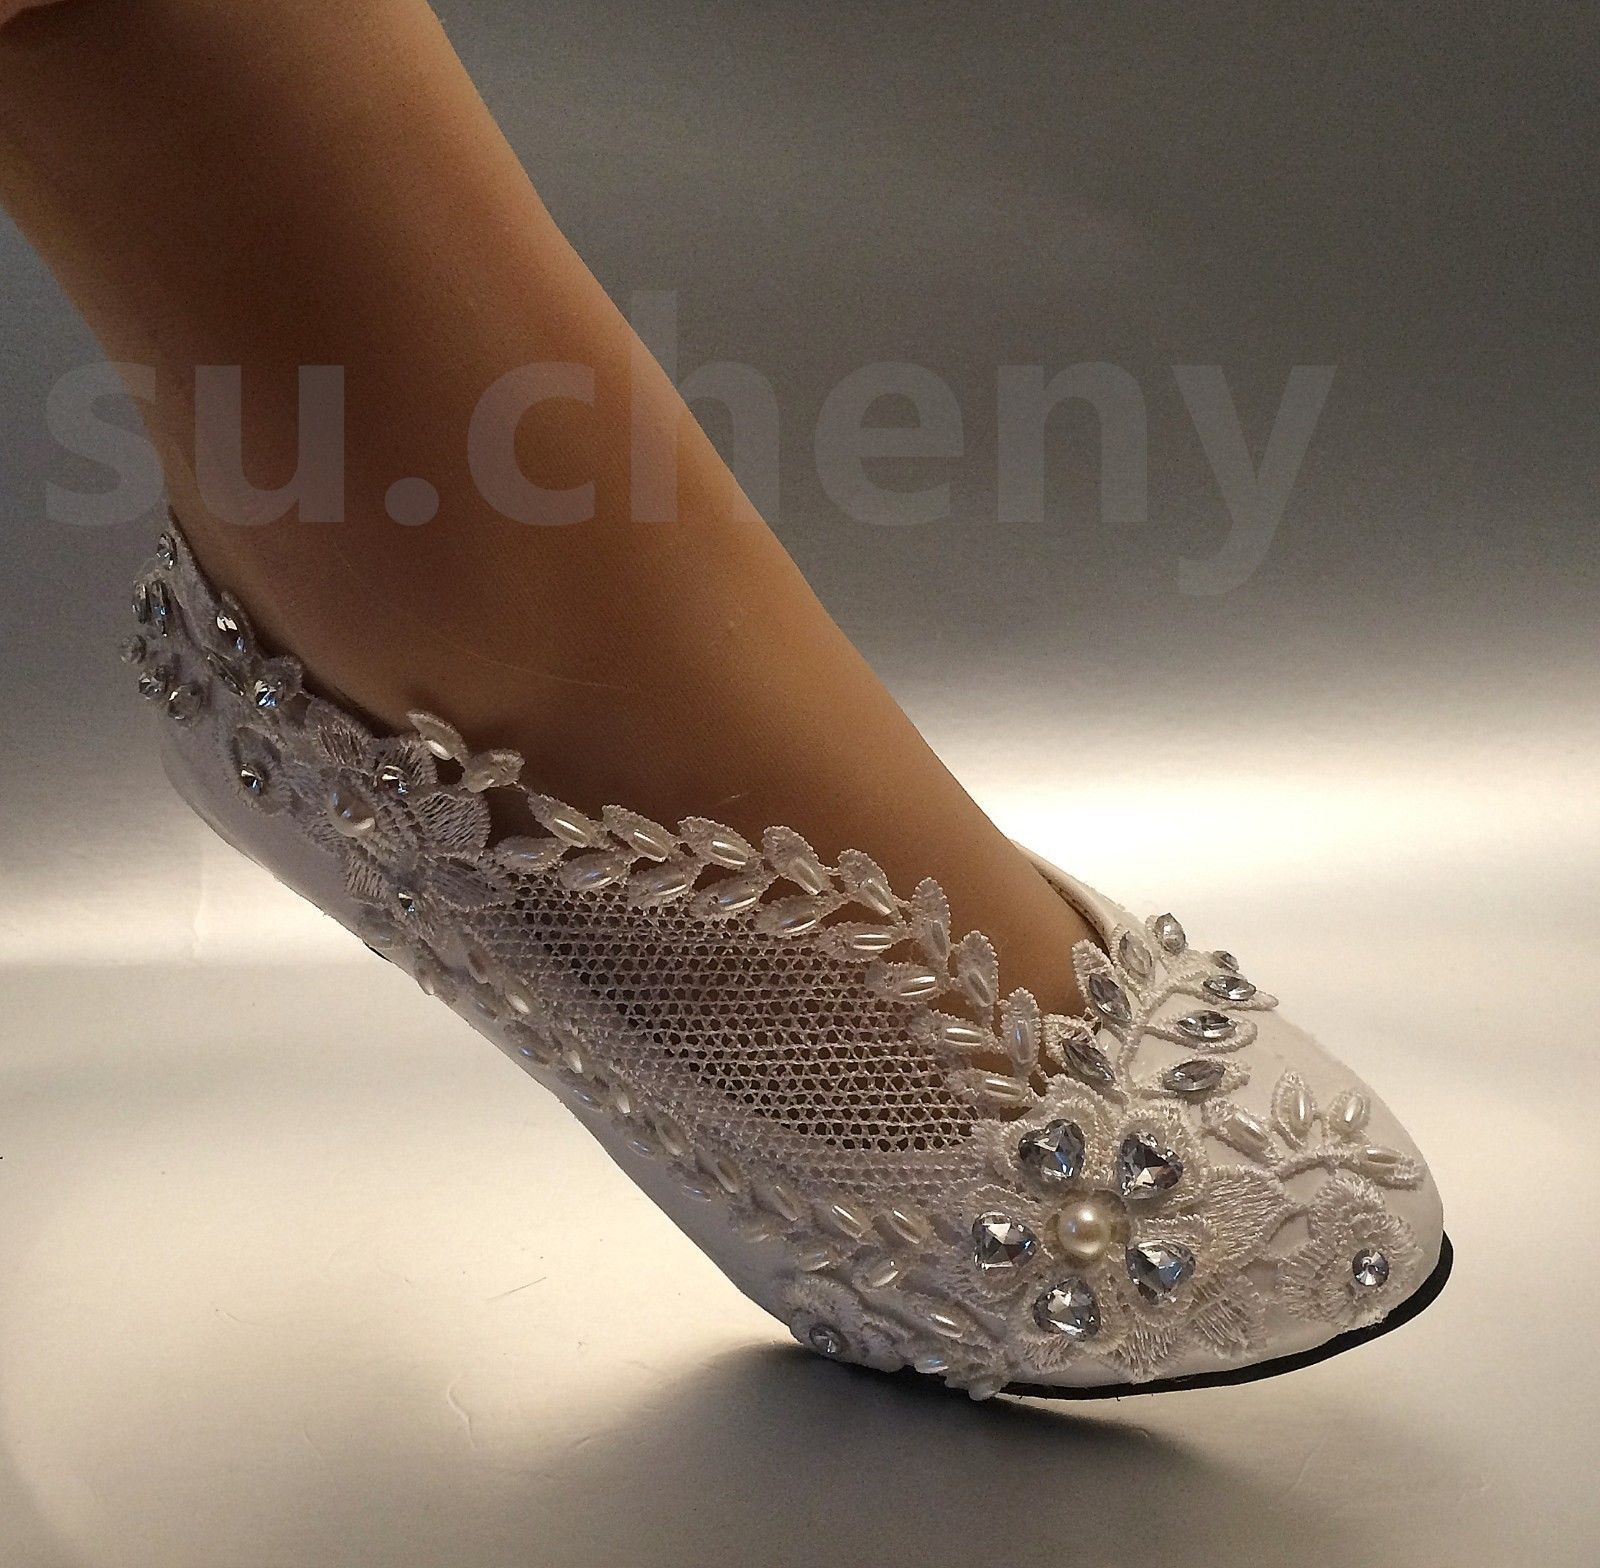 Su Cheny 2 Lace White Light Ivory Rhinestone Wedding Bridal Pumps Heels Shoes Bridal Shoes Low Heel Wedding Shoes Lace Ivory Wedding Shoes Low Heel